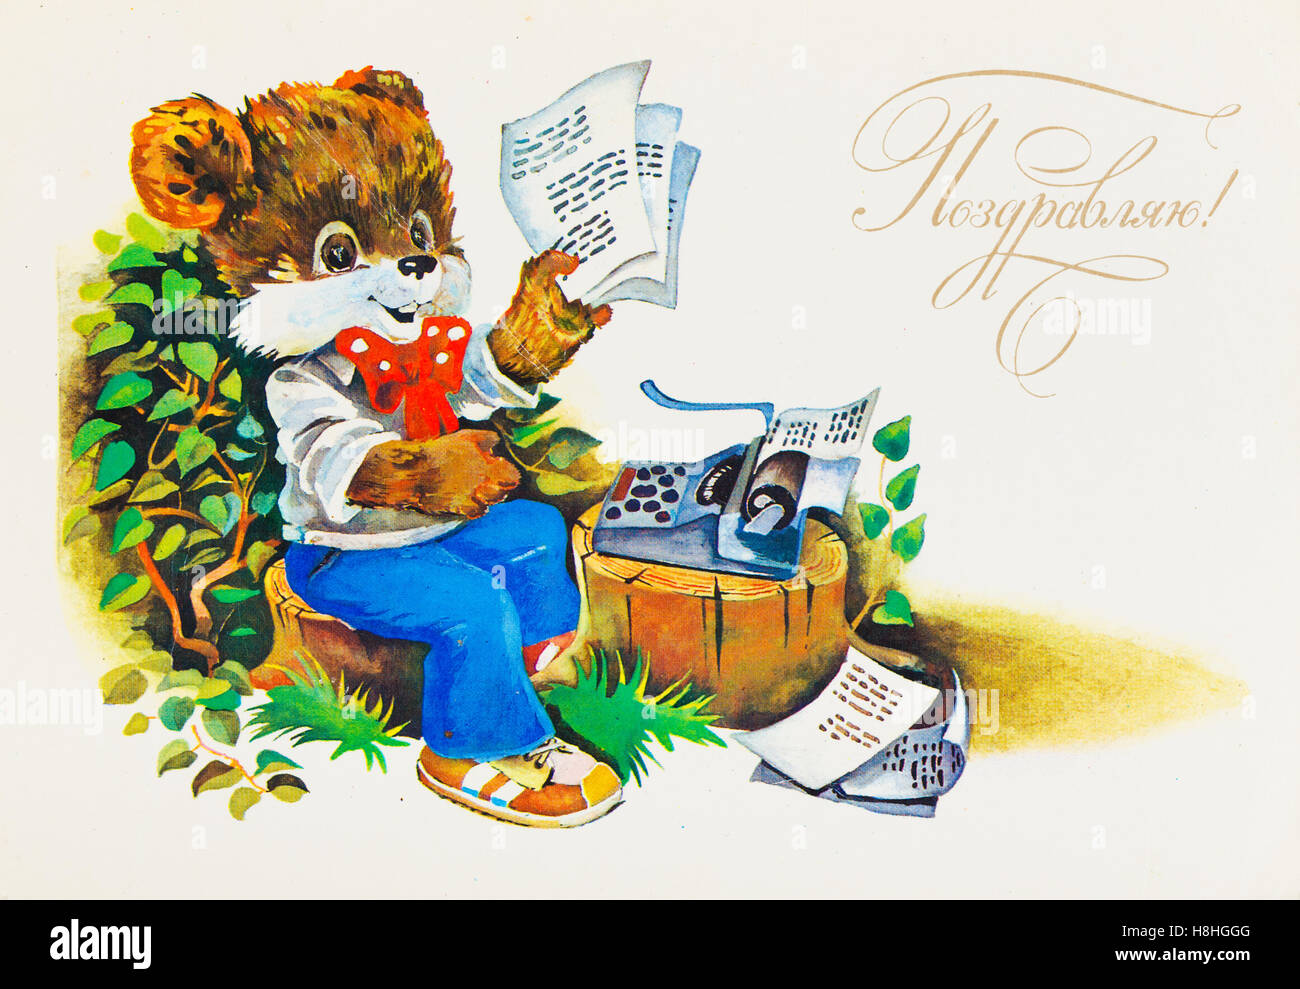 USSR - CIRCA 1989: Reproduction of antique postcard shows bear in jeans, shirt and bow print on a typewriter, sitting - Stock Image